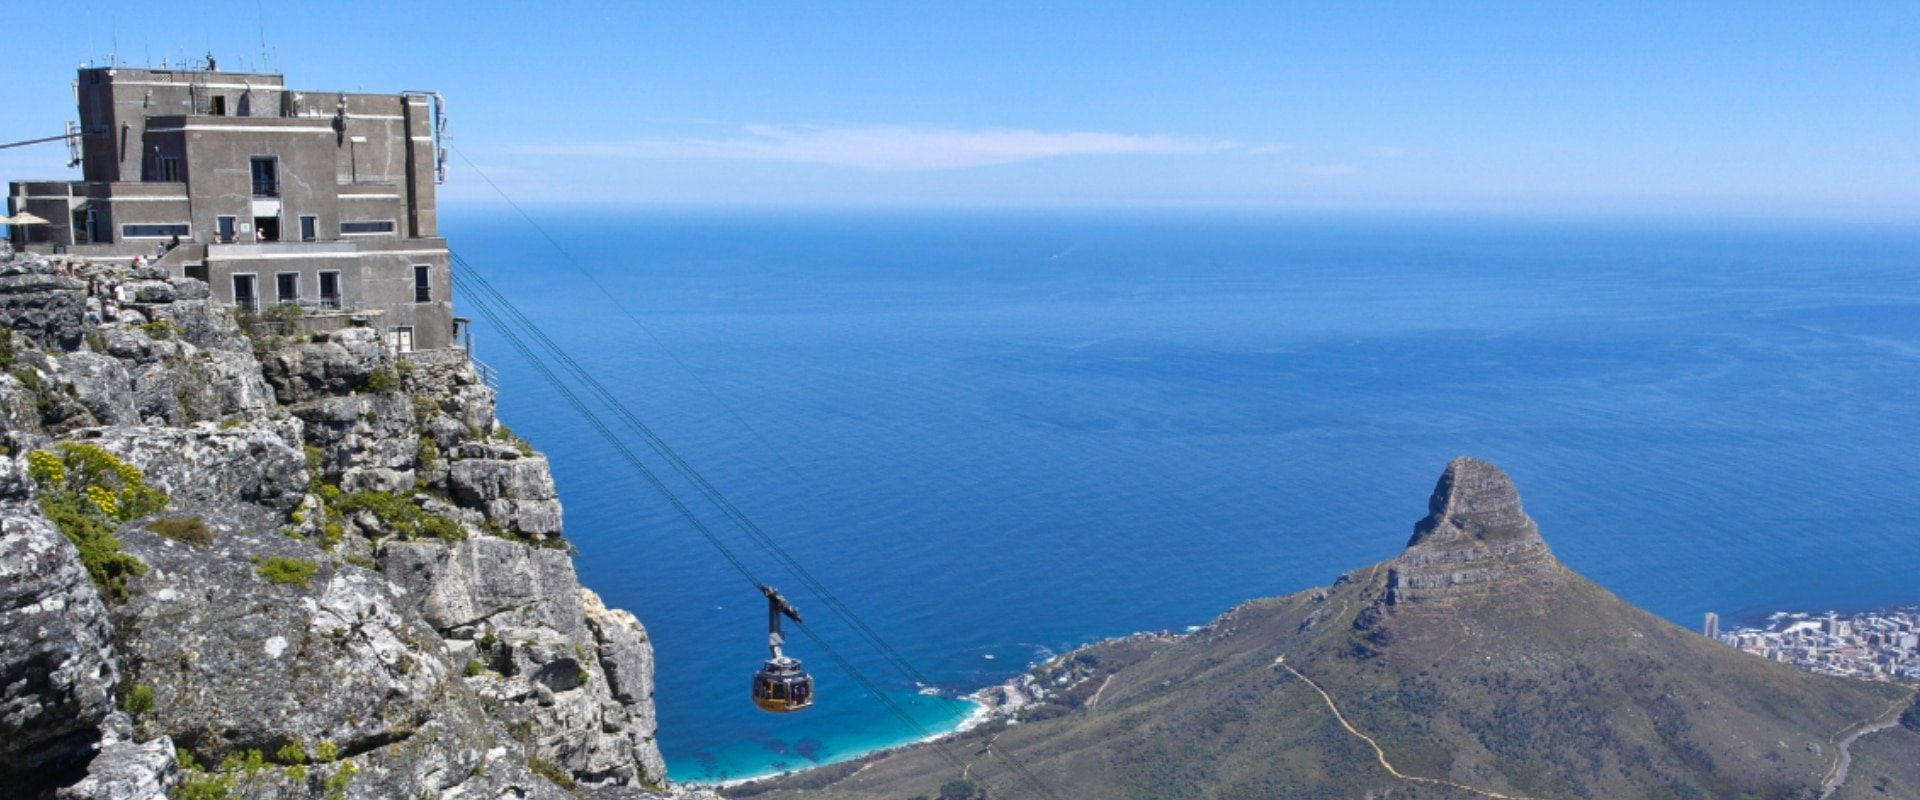 Take in breathtaking views from the top of Table Mountain